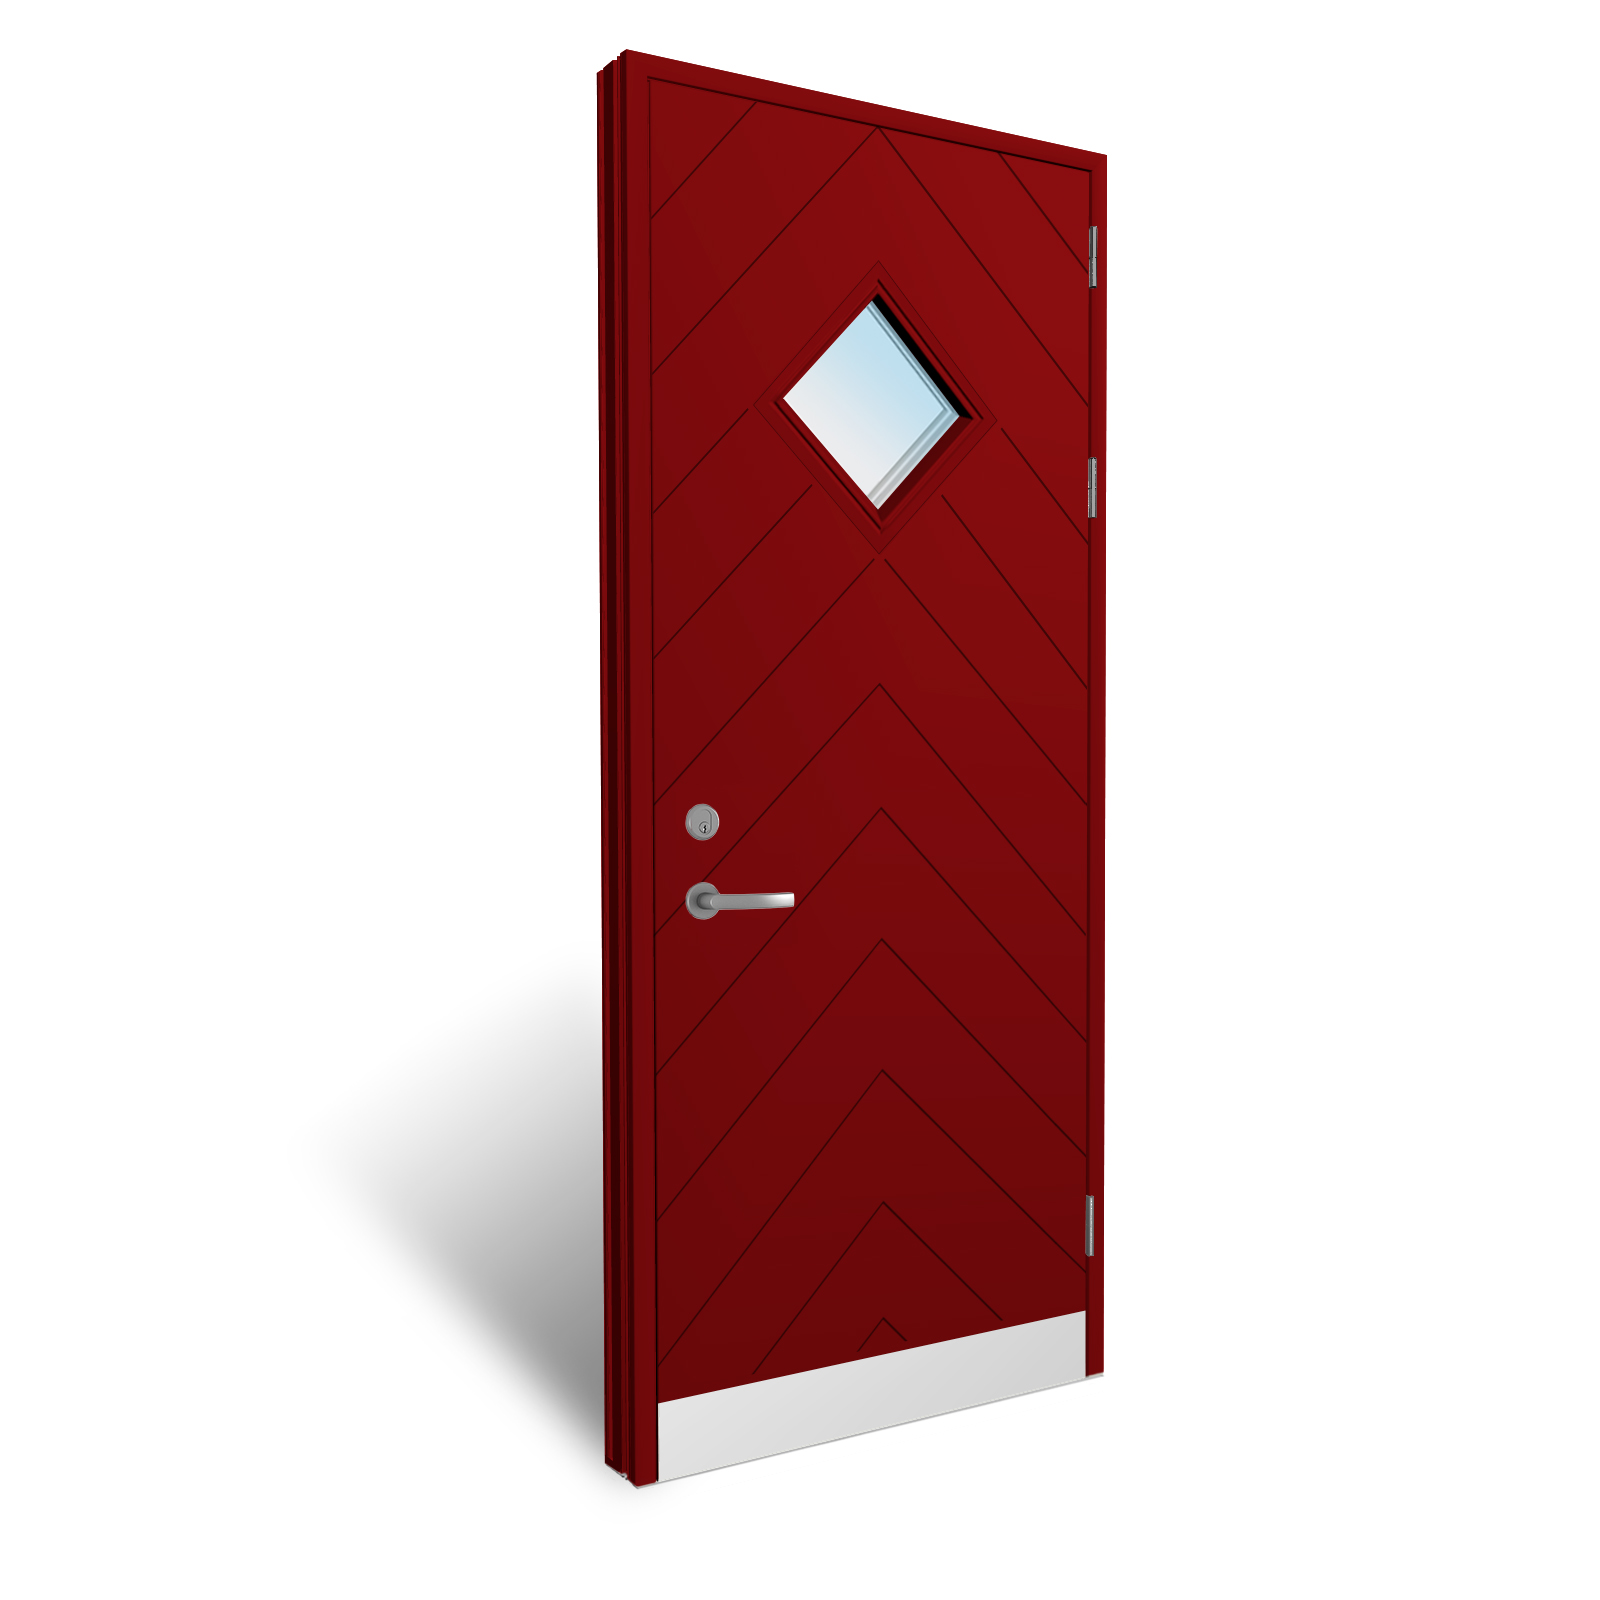 Aluminum Flush Panel Doors : Flush panel doors with grooves and vision panels from